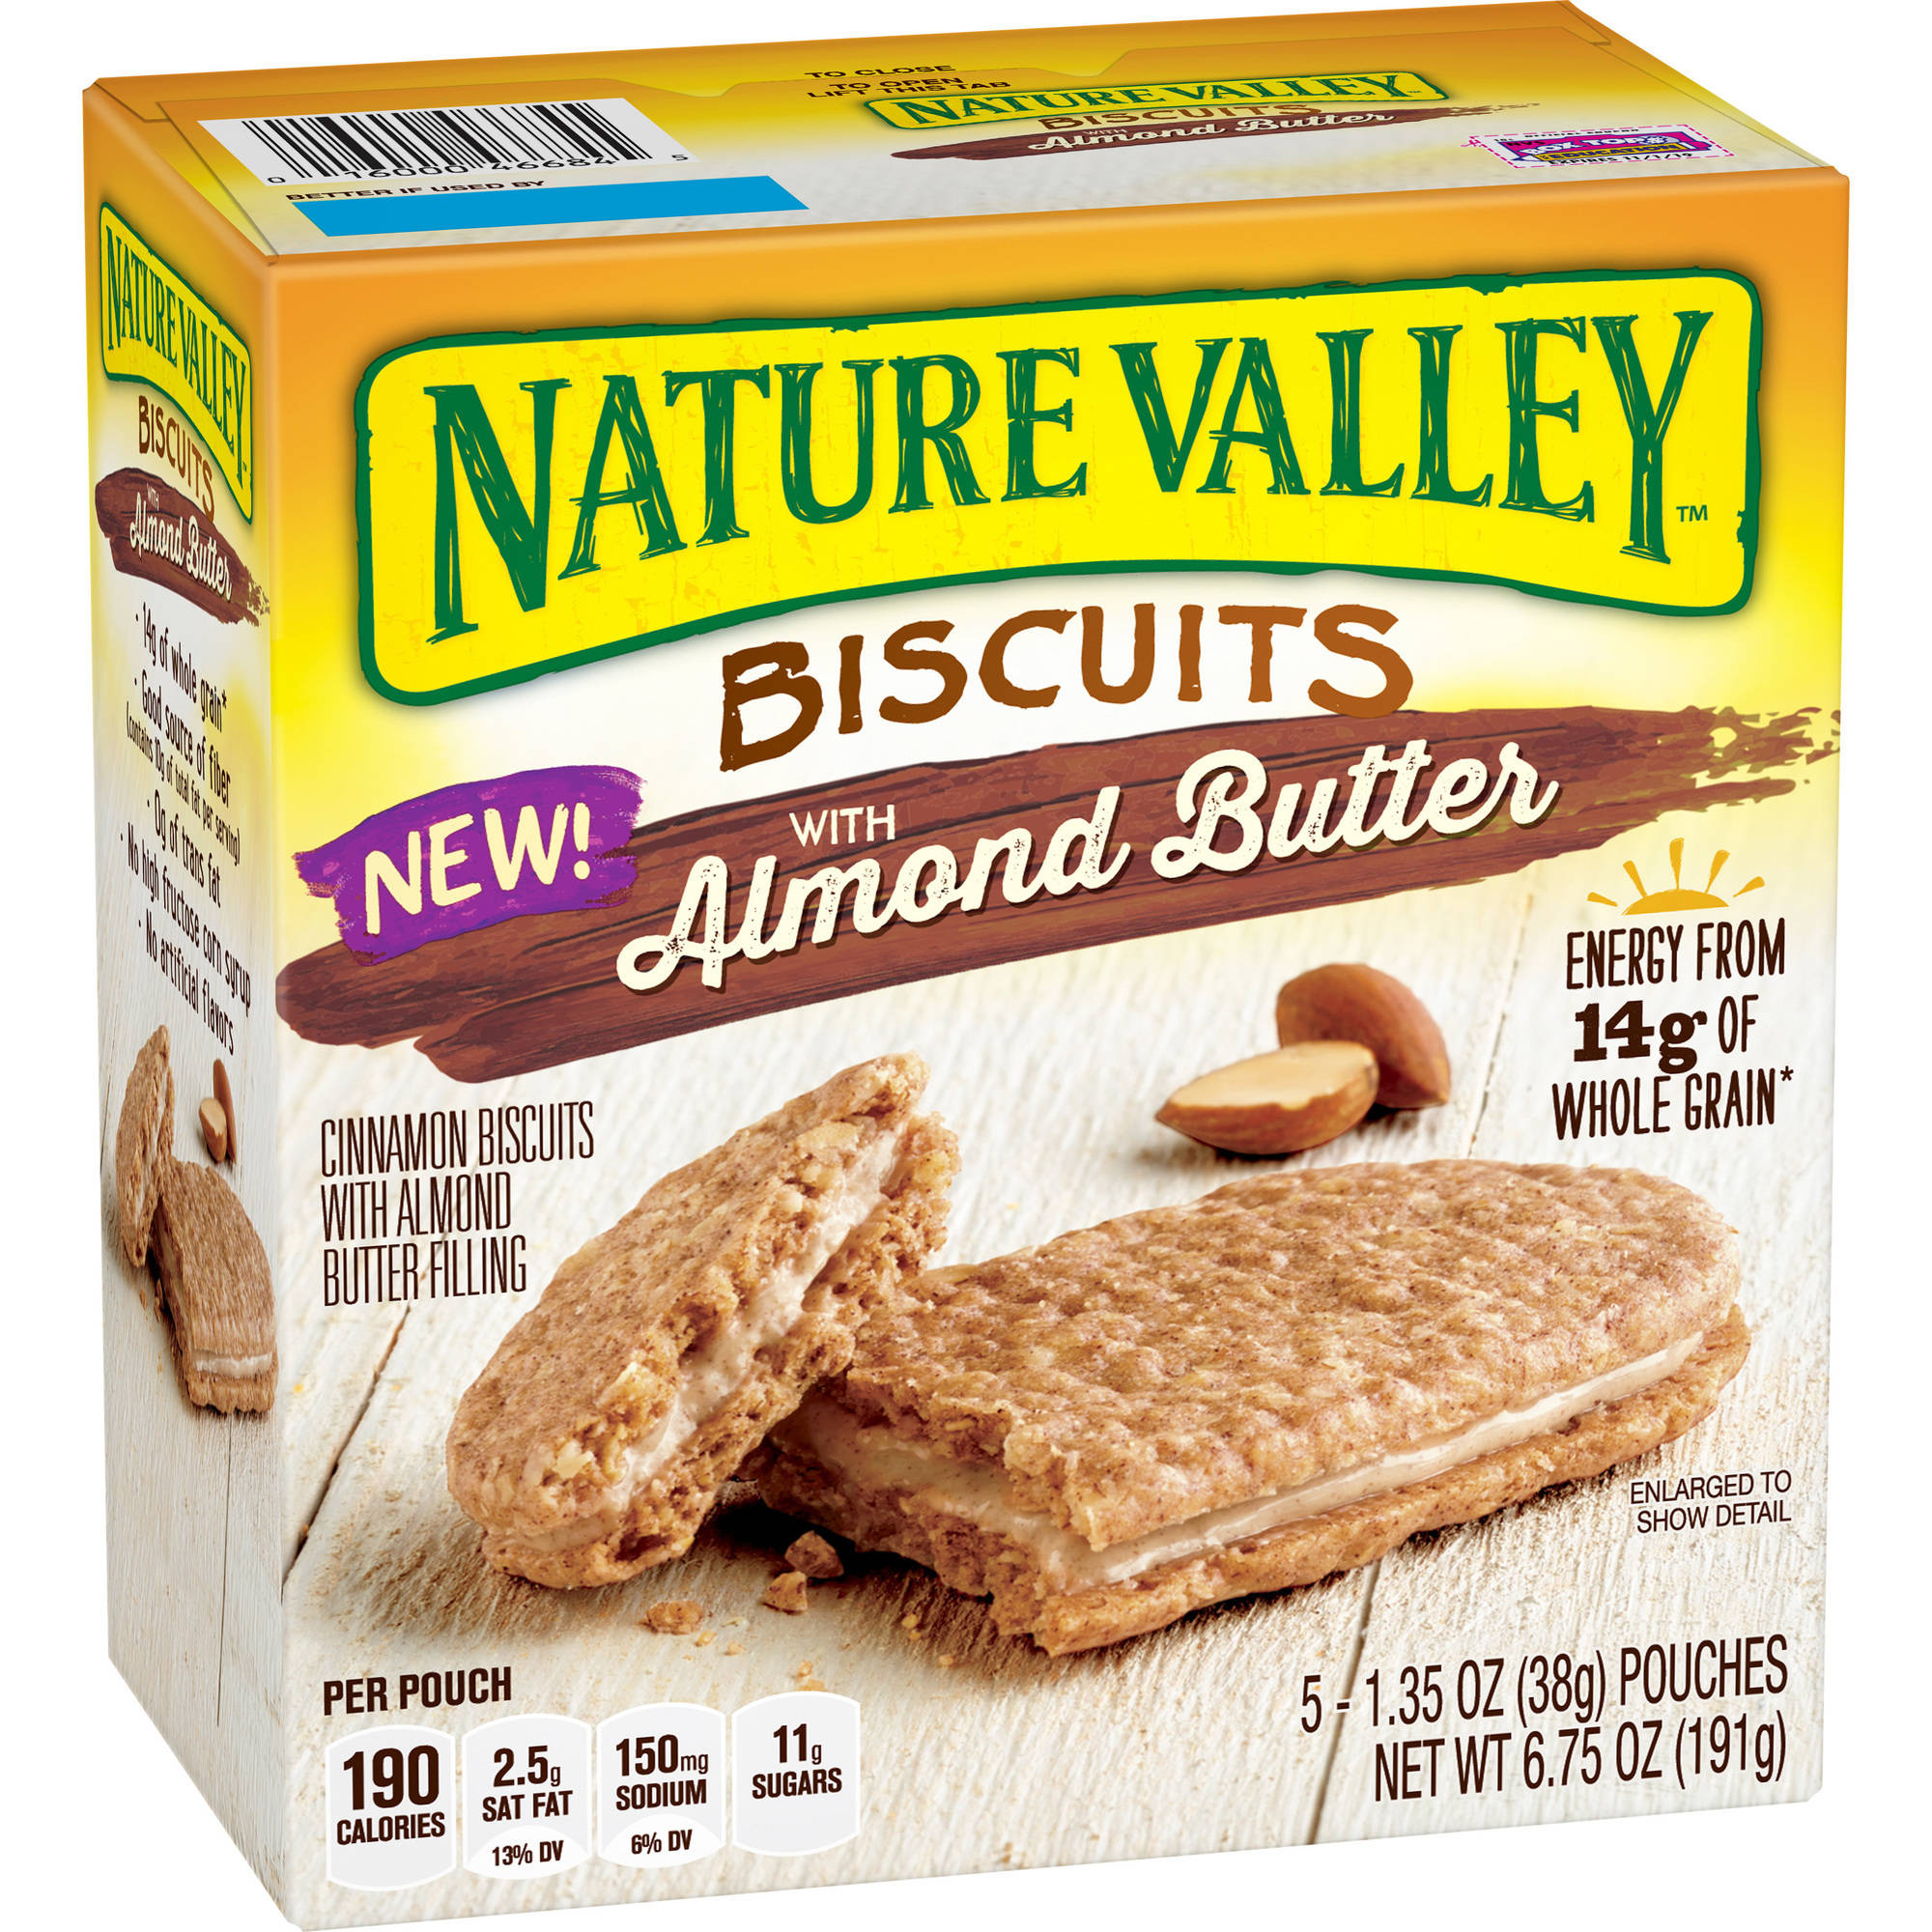 Nature Valley Biscuits with Almond Butter, 1.35 oz, 5 count